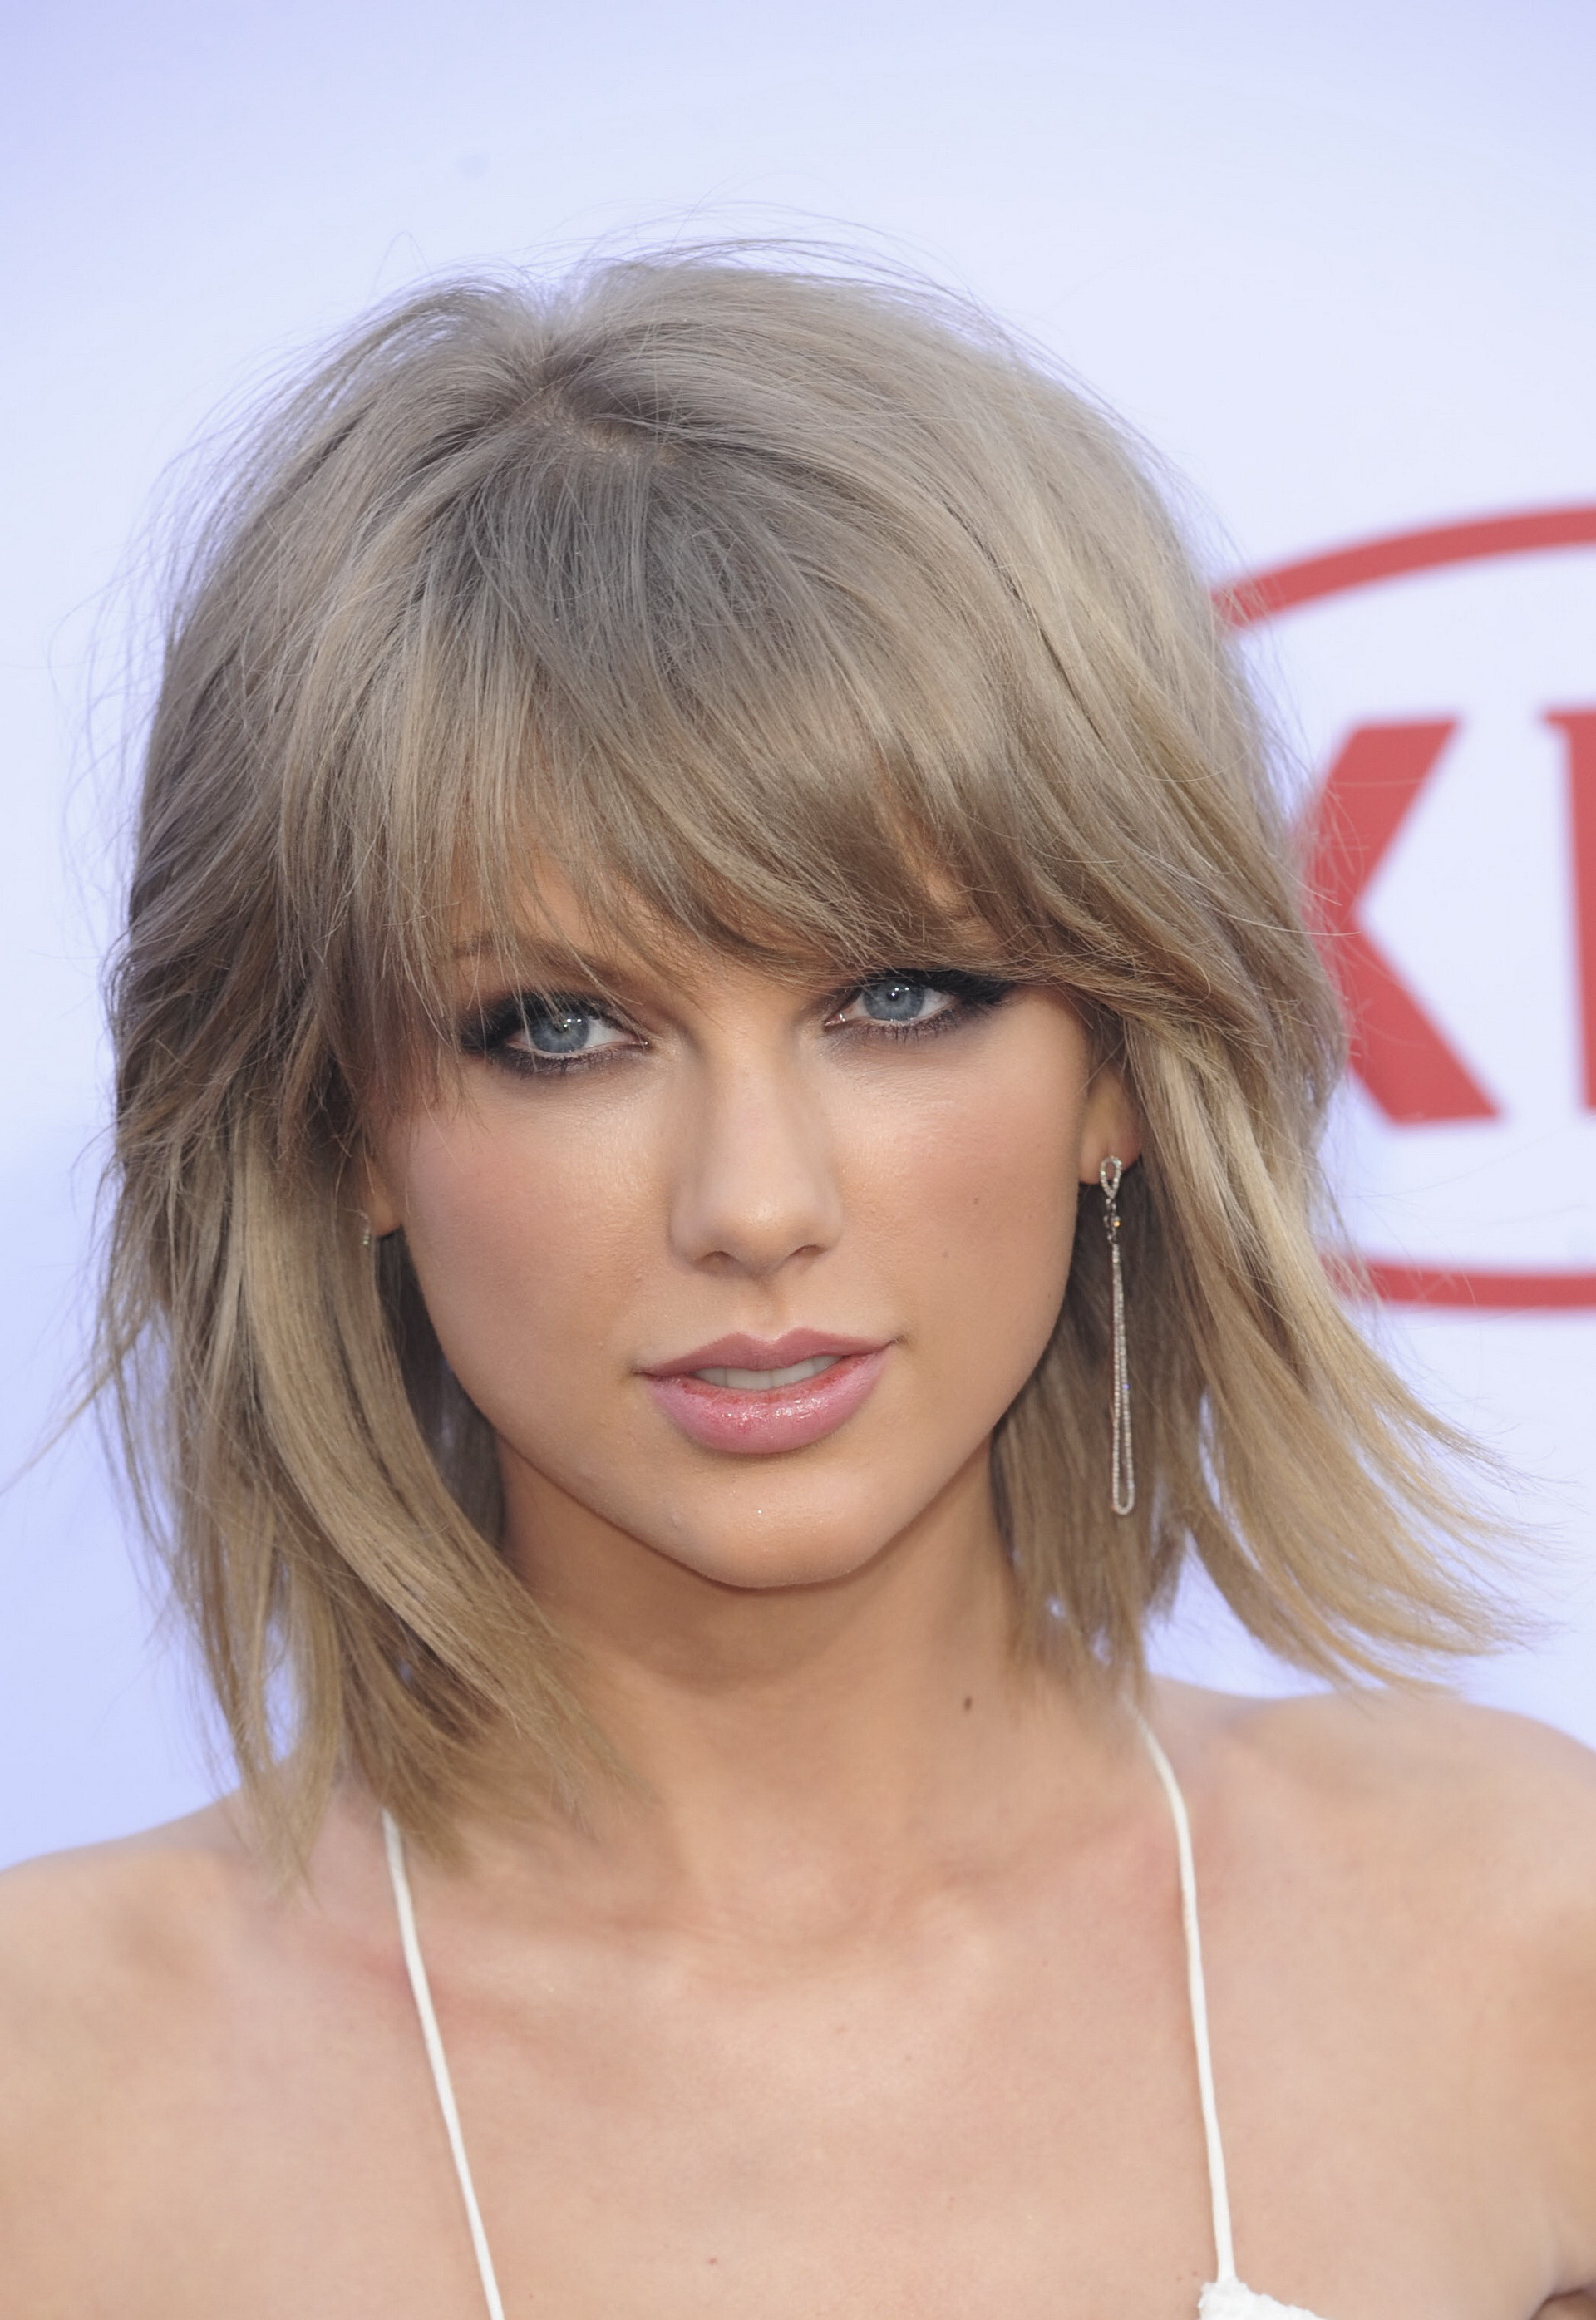 Best ideas about Female Haircuts . Save or Pin Short hairstyles for women – 35 advice for choosing Now.